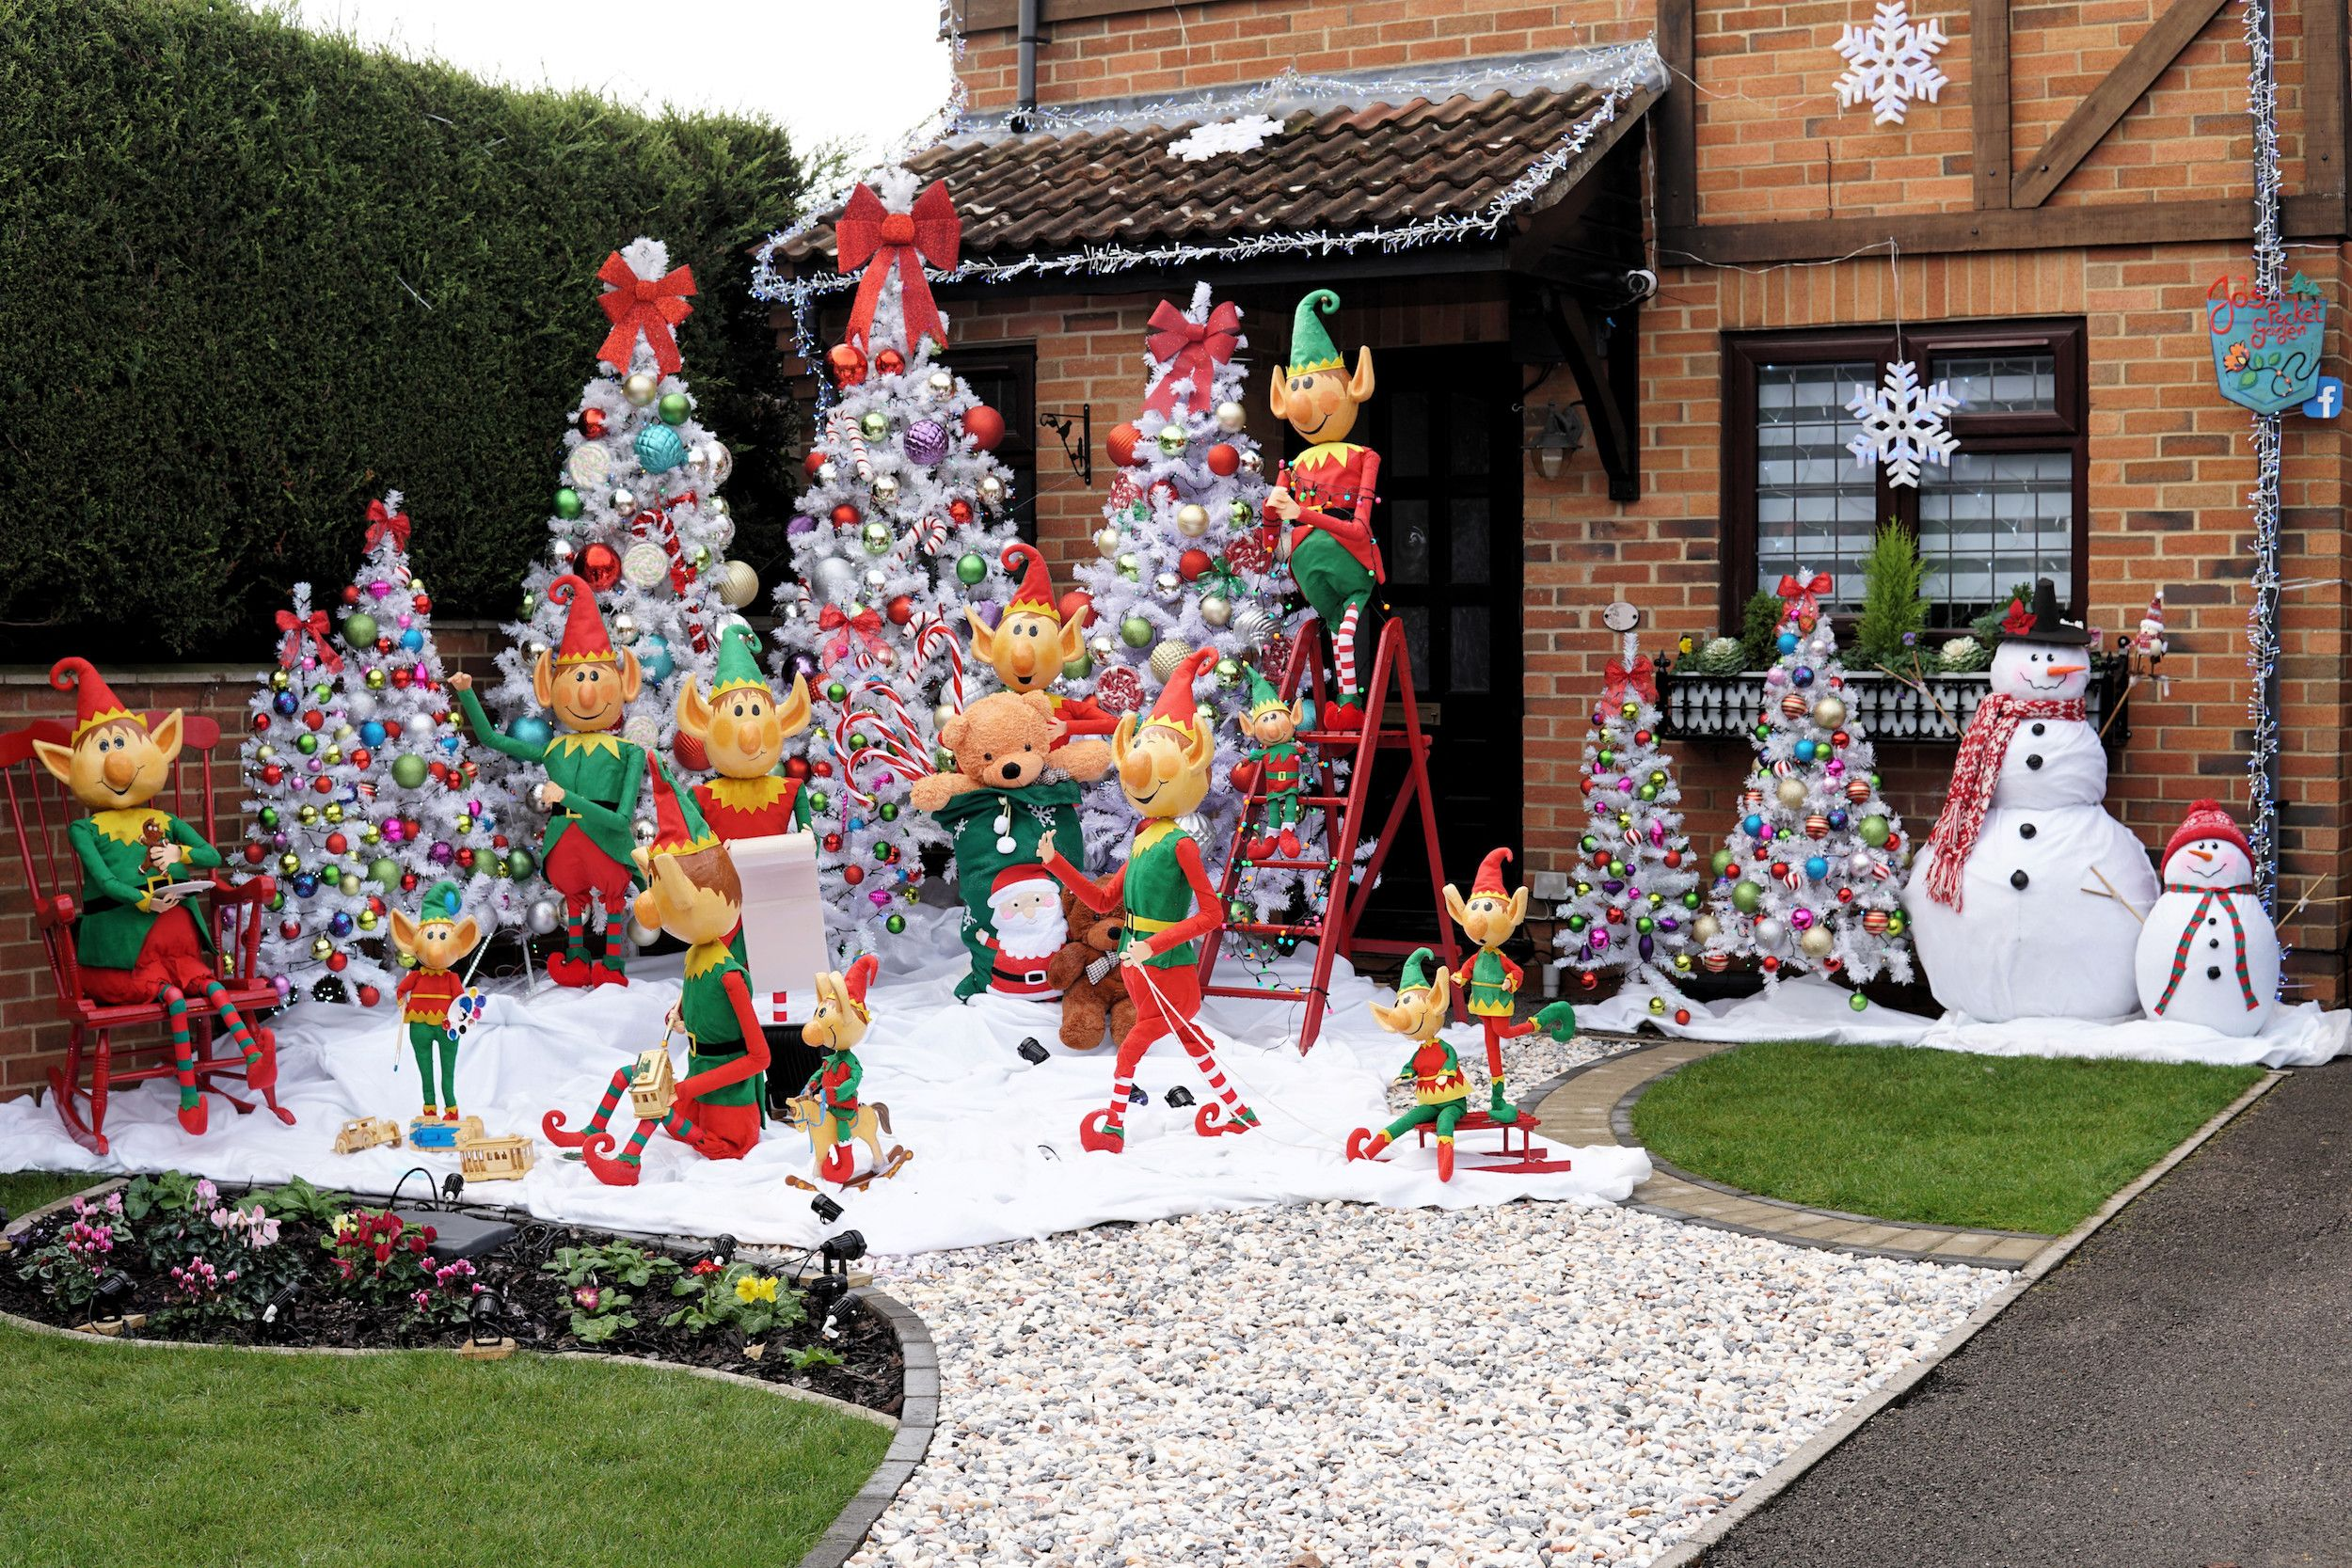 Zoopla crowns house in Reading as the UK's most festive home